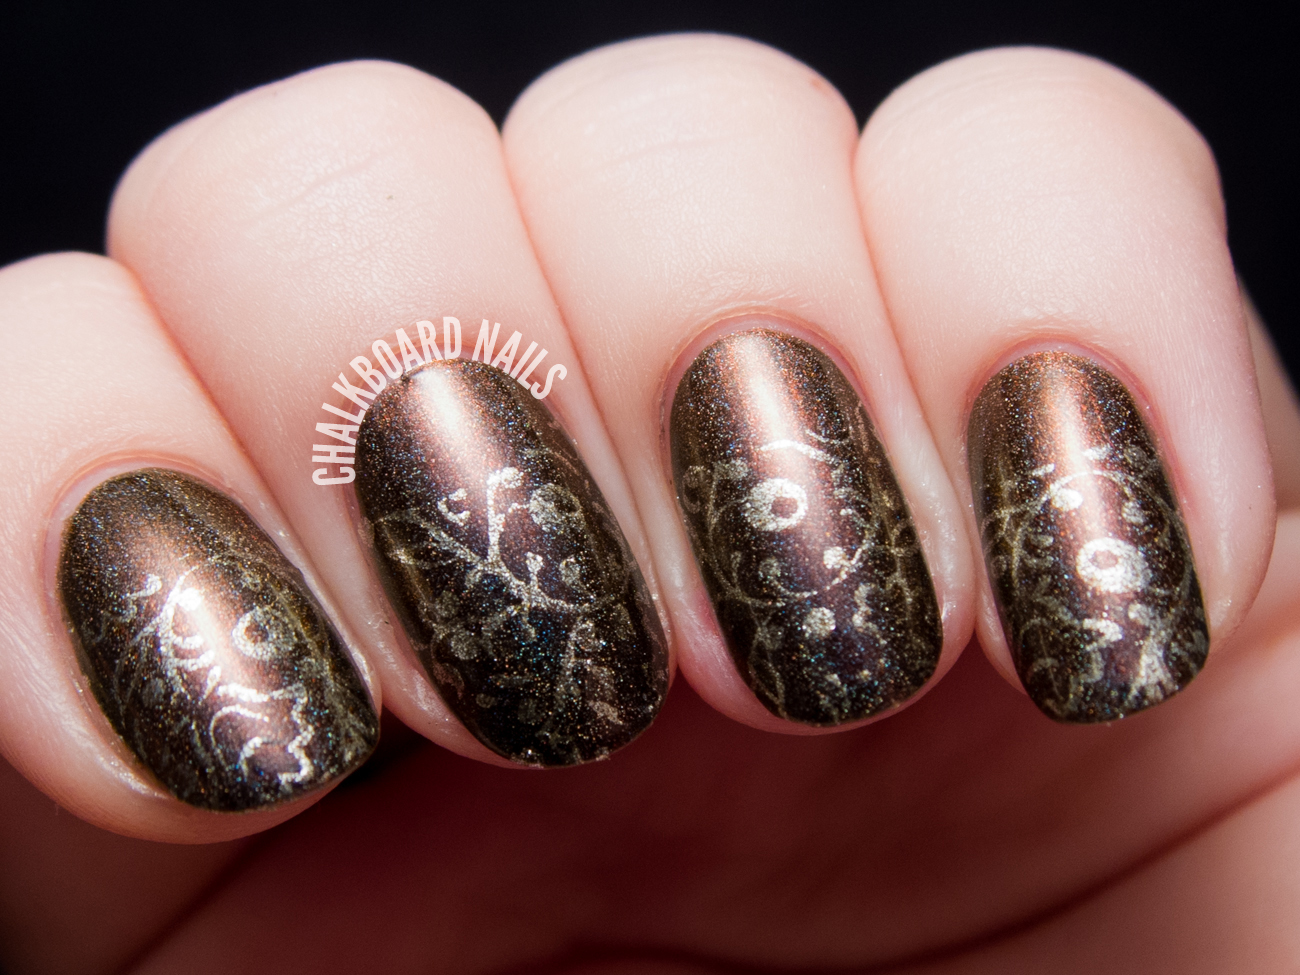 Autumnal Gilded Half Moon Stamping by @chalkboardnails